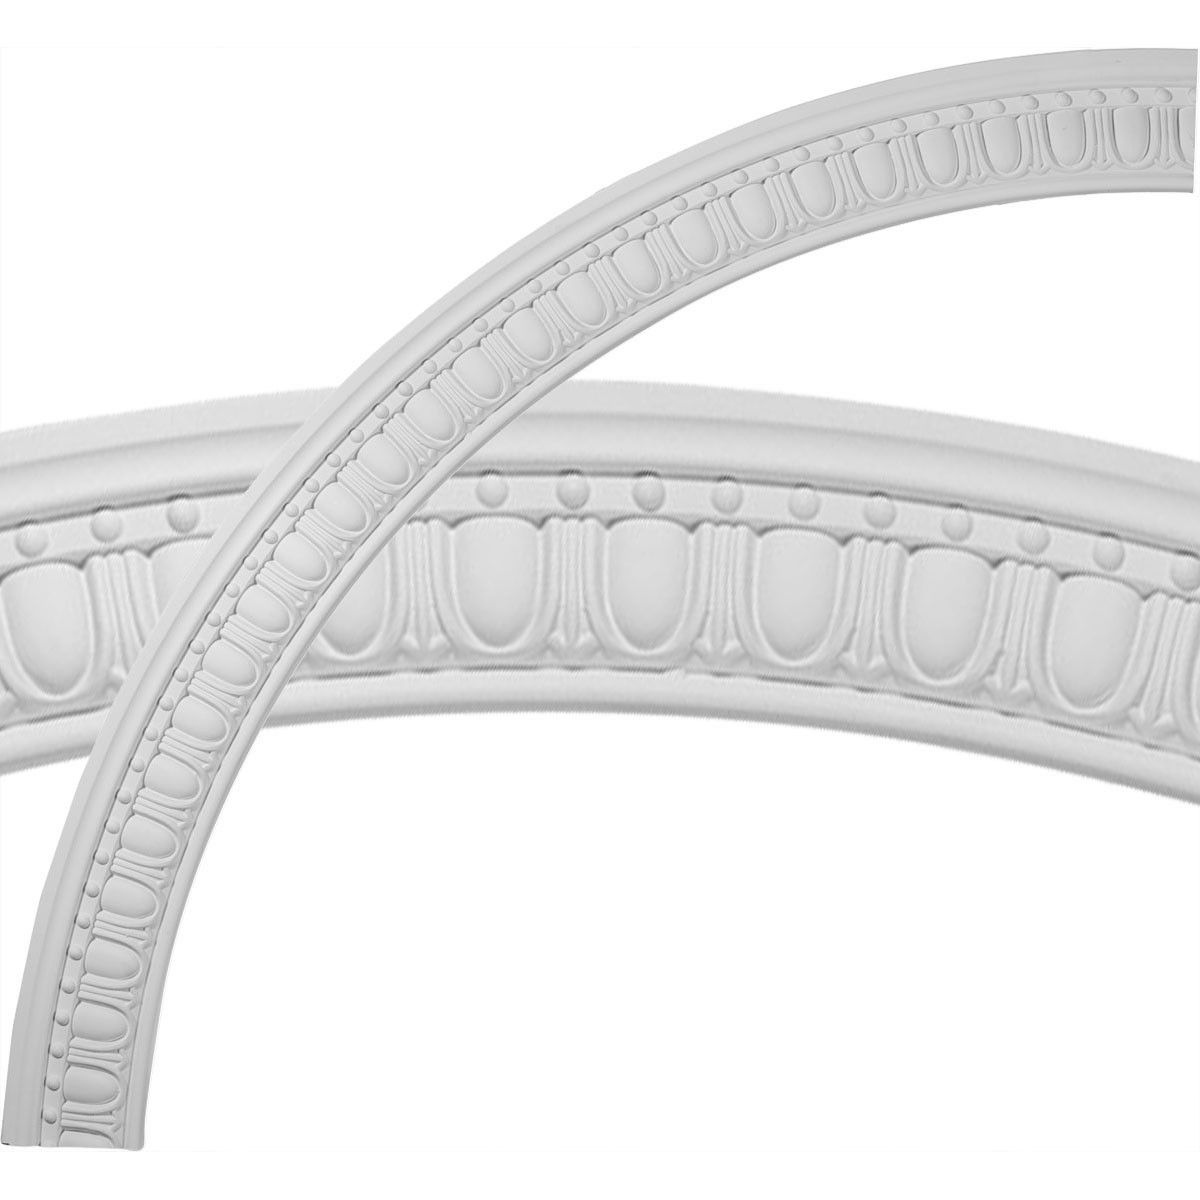 """EM-CR59AR - 59""""OD x 51 3/4""""ID x 3 5/8""""W x 1""""P Artis Egg and Dart Ceiling Ring (1/4 of complete circle)"""